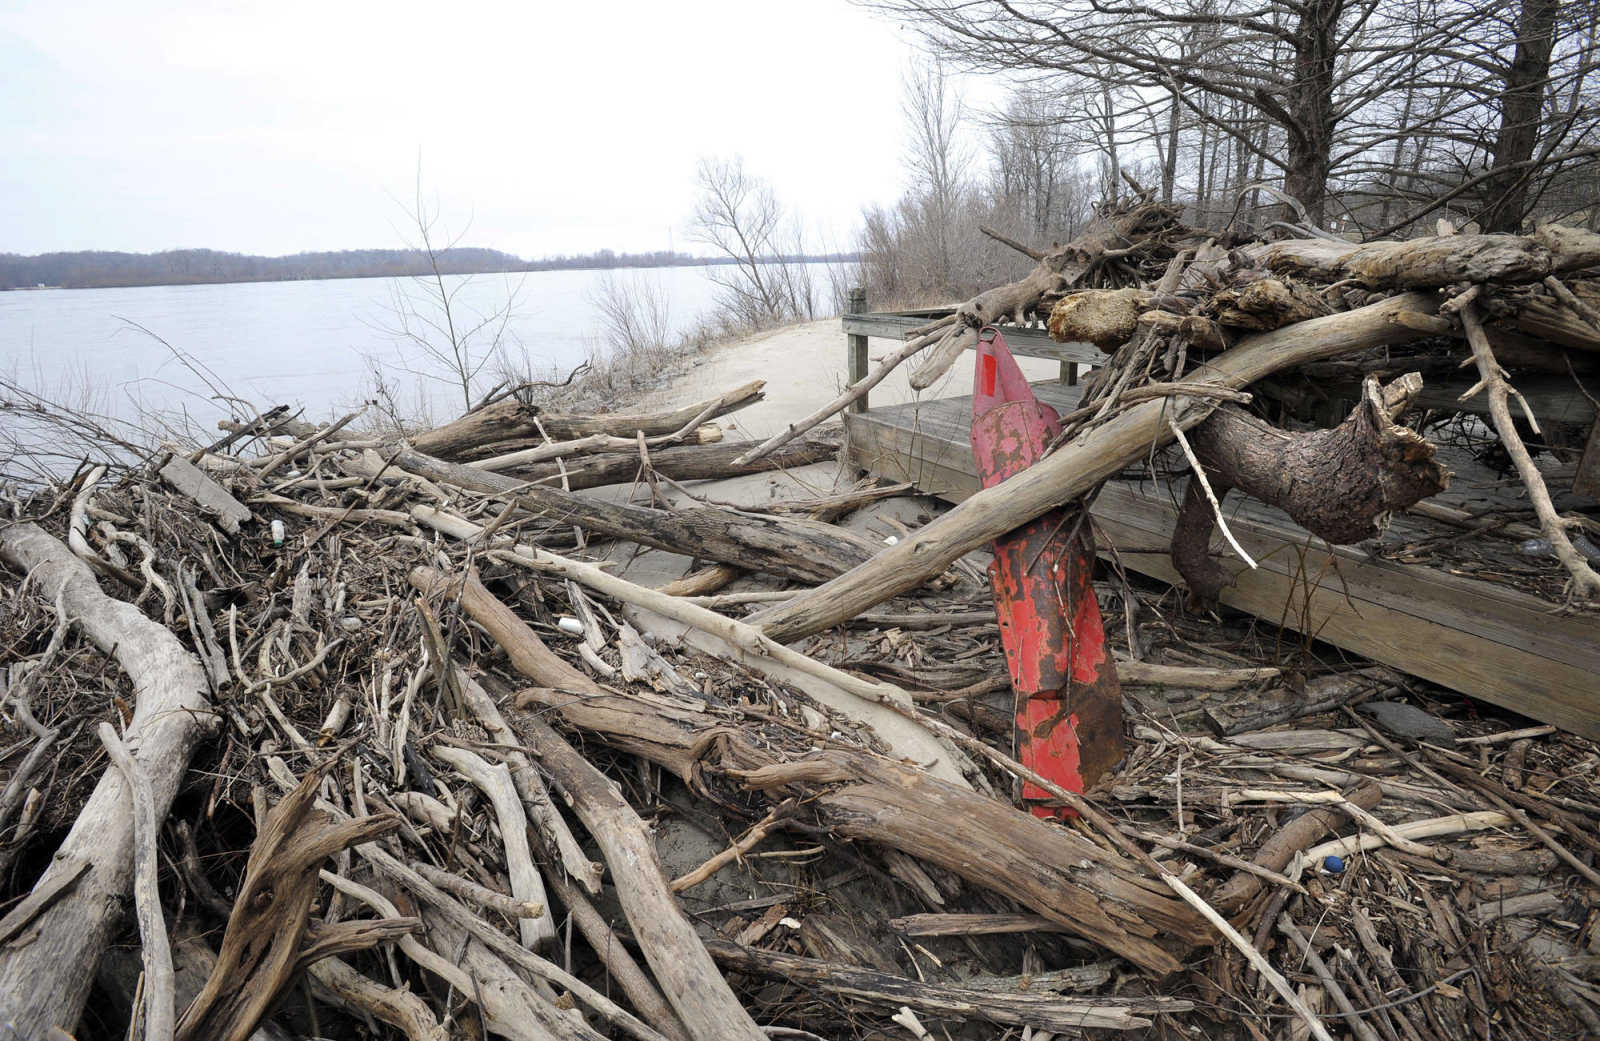 Illinois alexander county thebes - Mississippi River Floodwaters Deposited Driftwood At The Boardwalk North Of Thebes Illinois As Seen Jan 16 2016 Fred Lynch